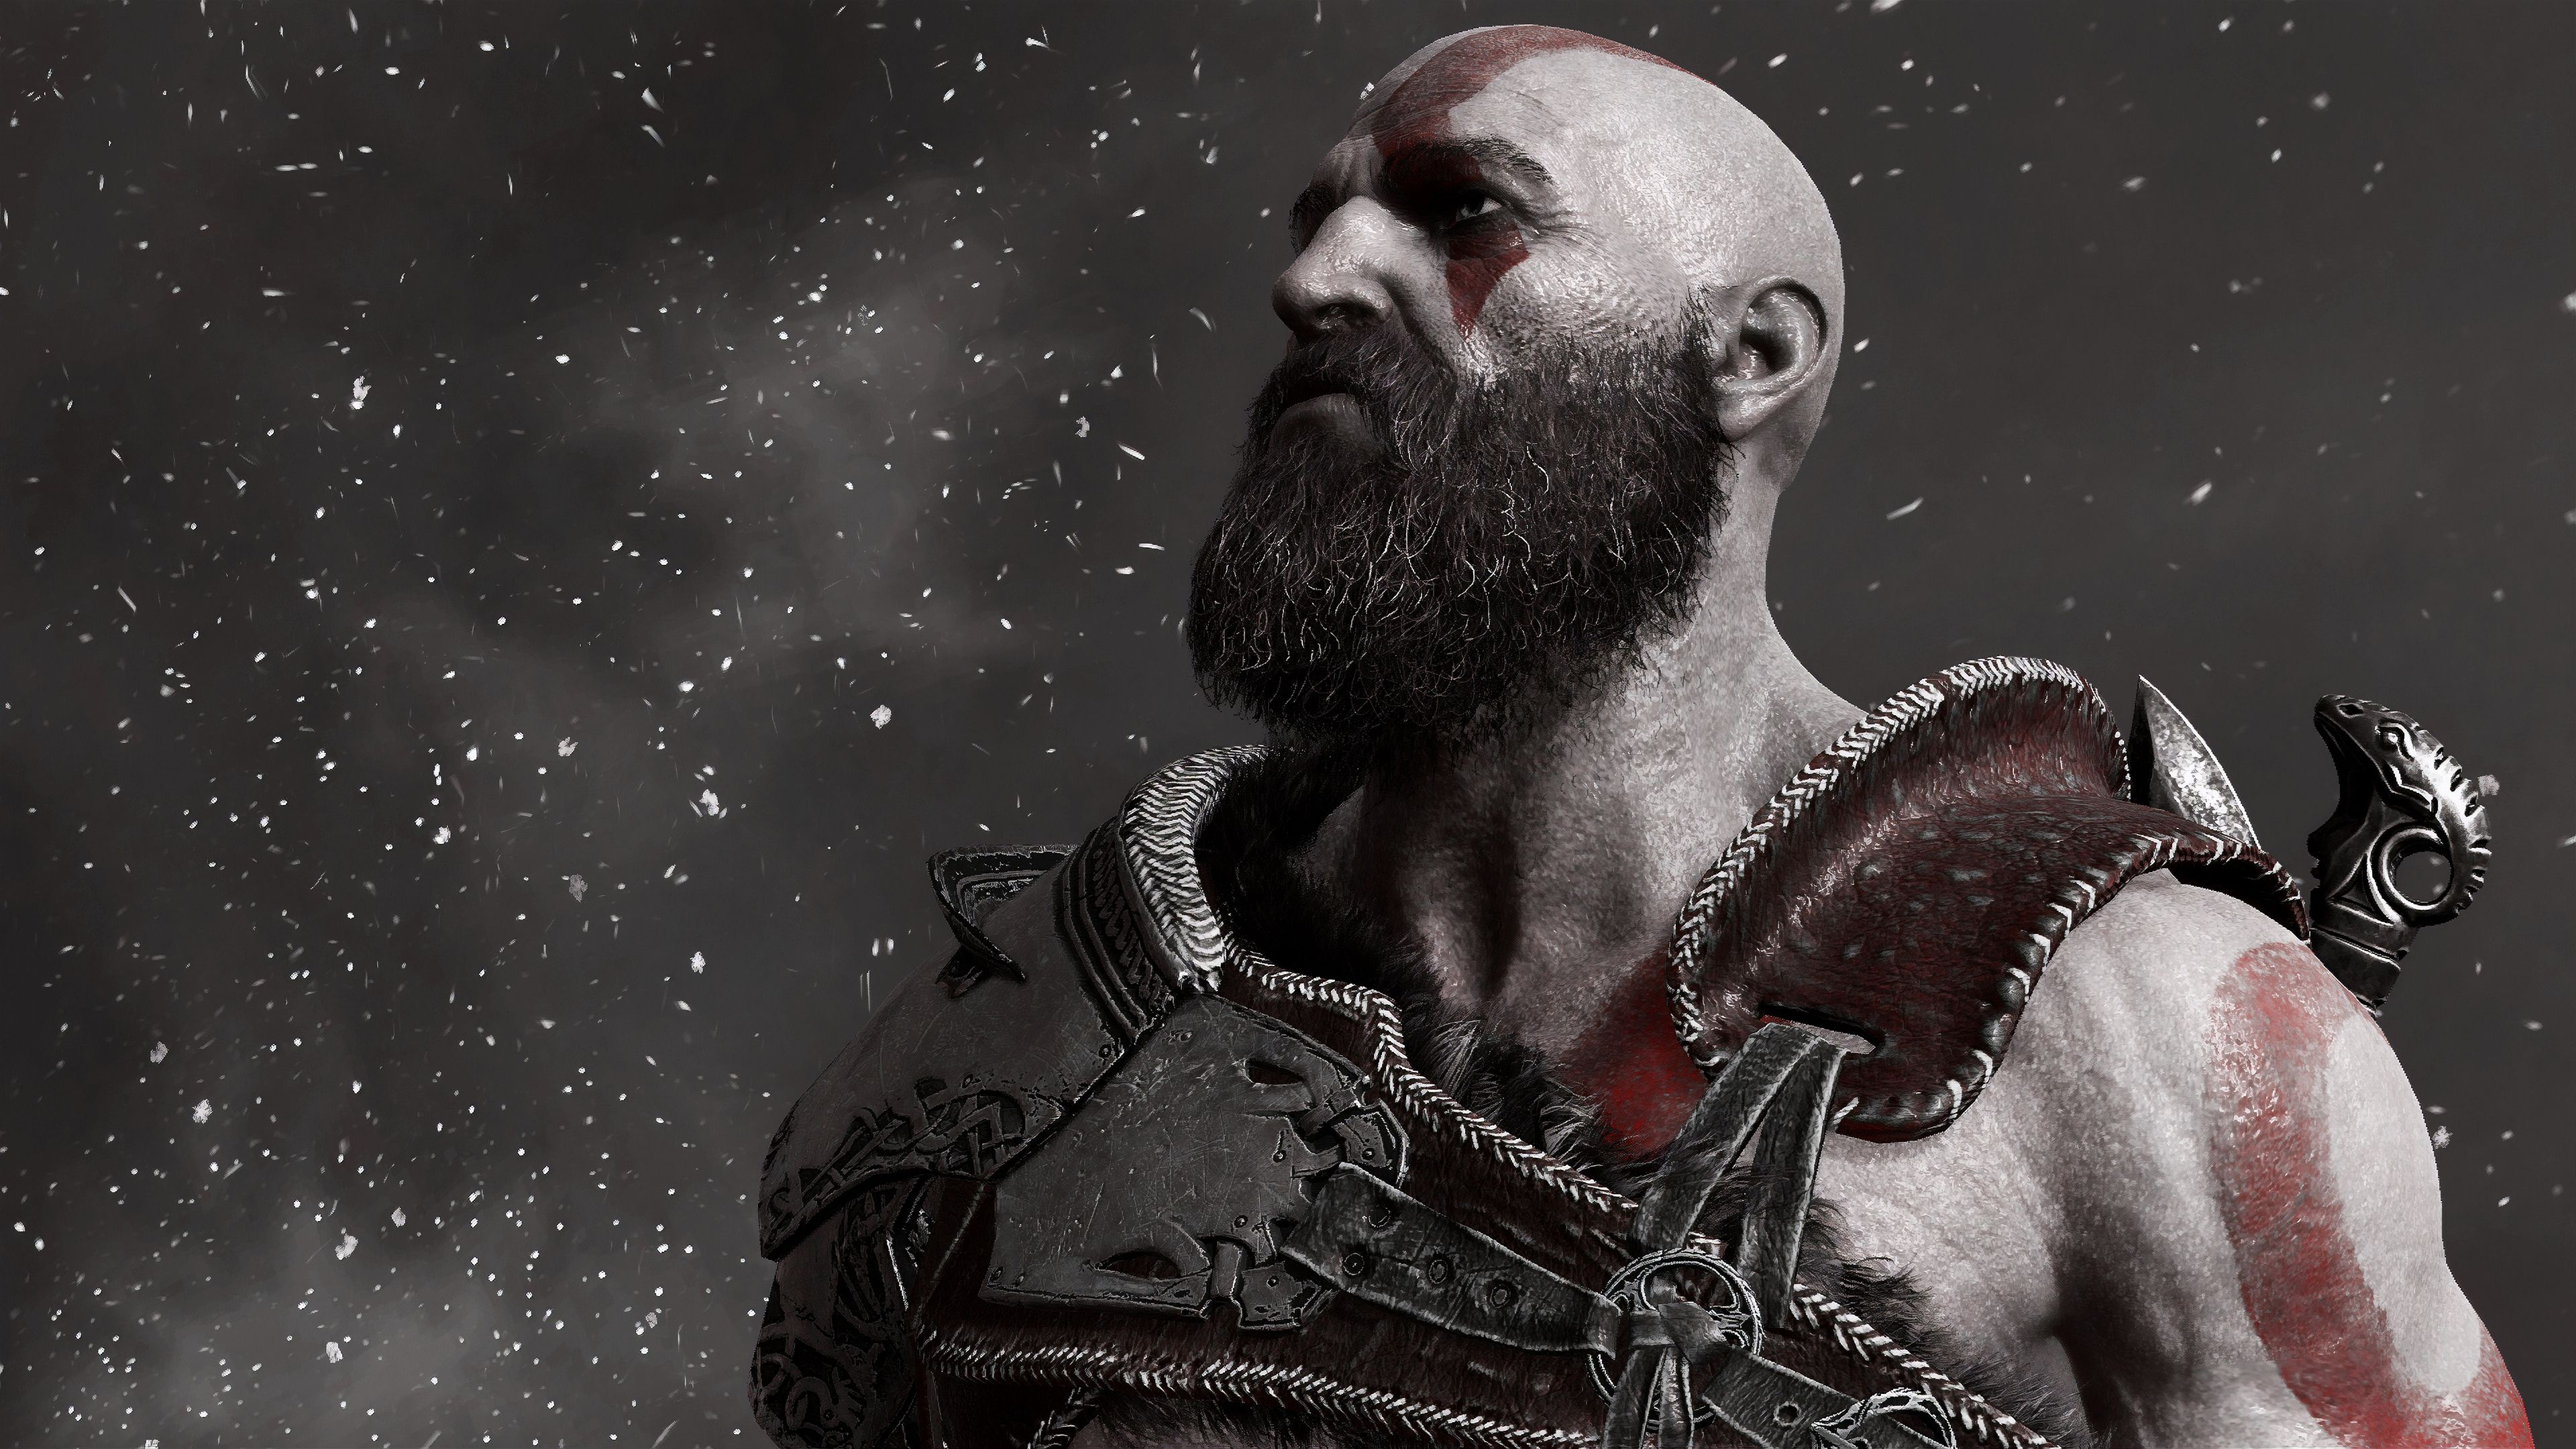 God Of War 4 4k Ps Games Wallpapers Kratos Wallpapers Hd Wallpapers God Of War Wallpapers God Of War 4 Wallpapers God Of War Hd Wallpaper Kratos God Of War